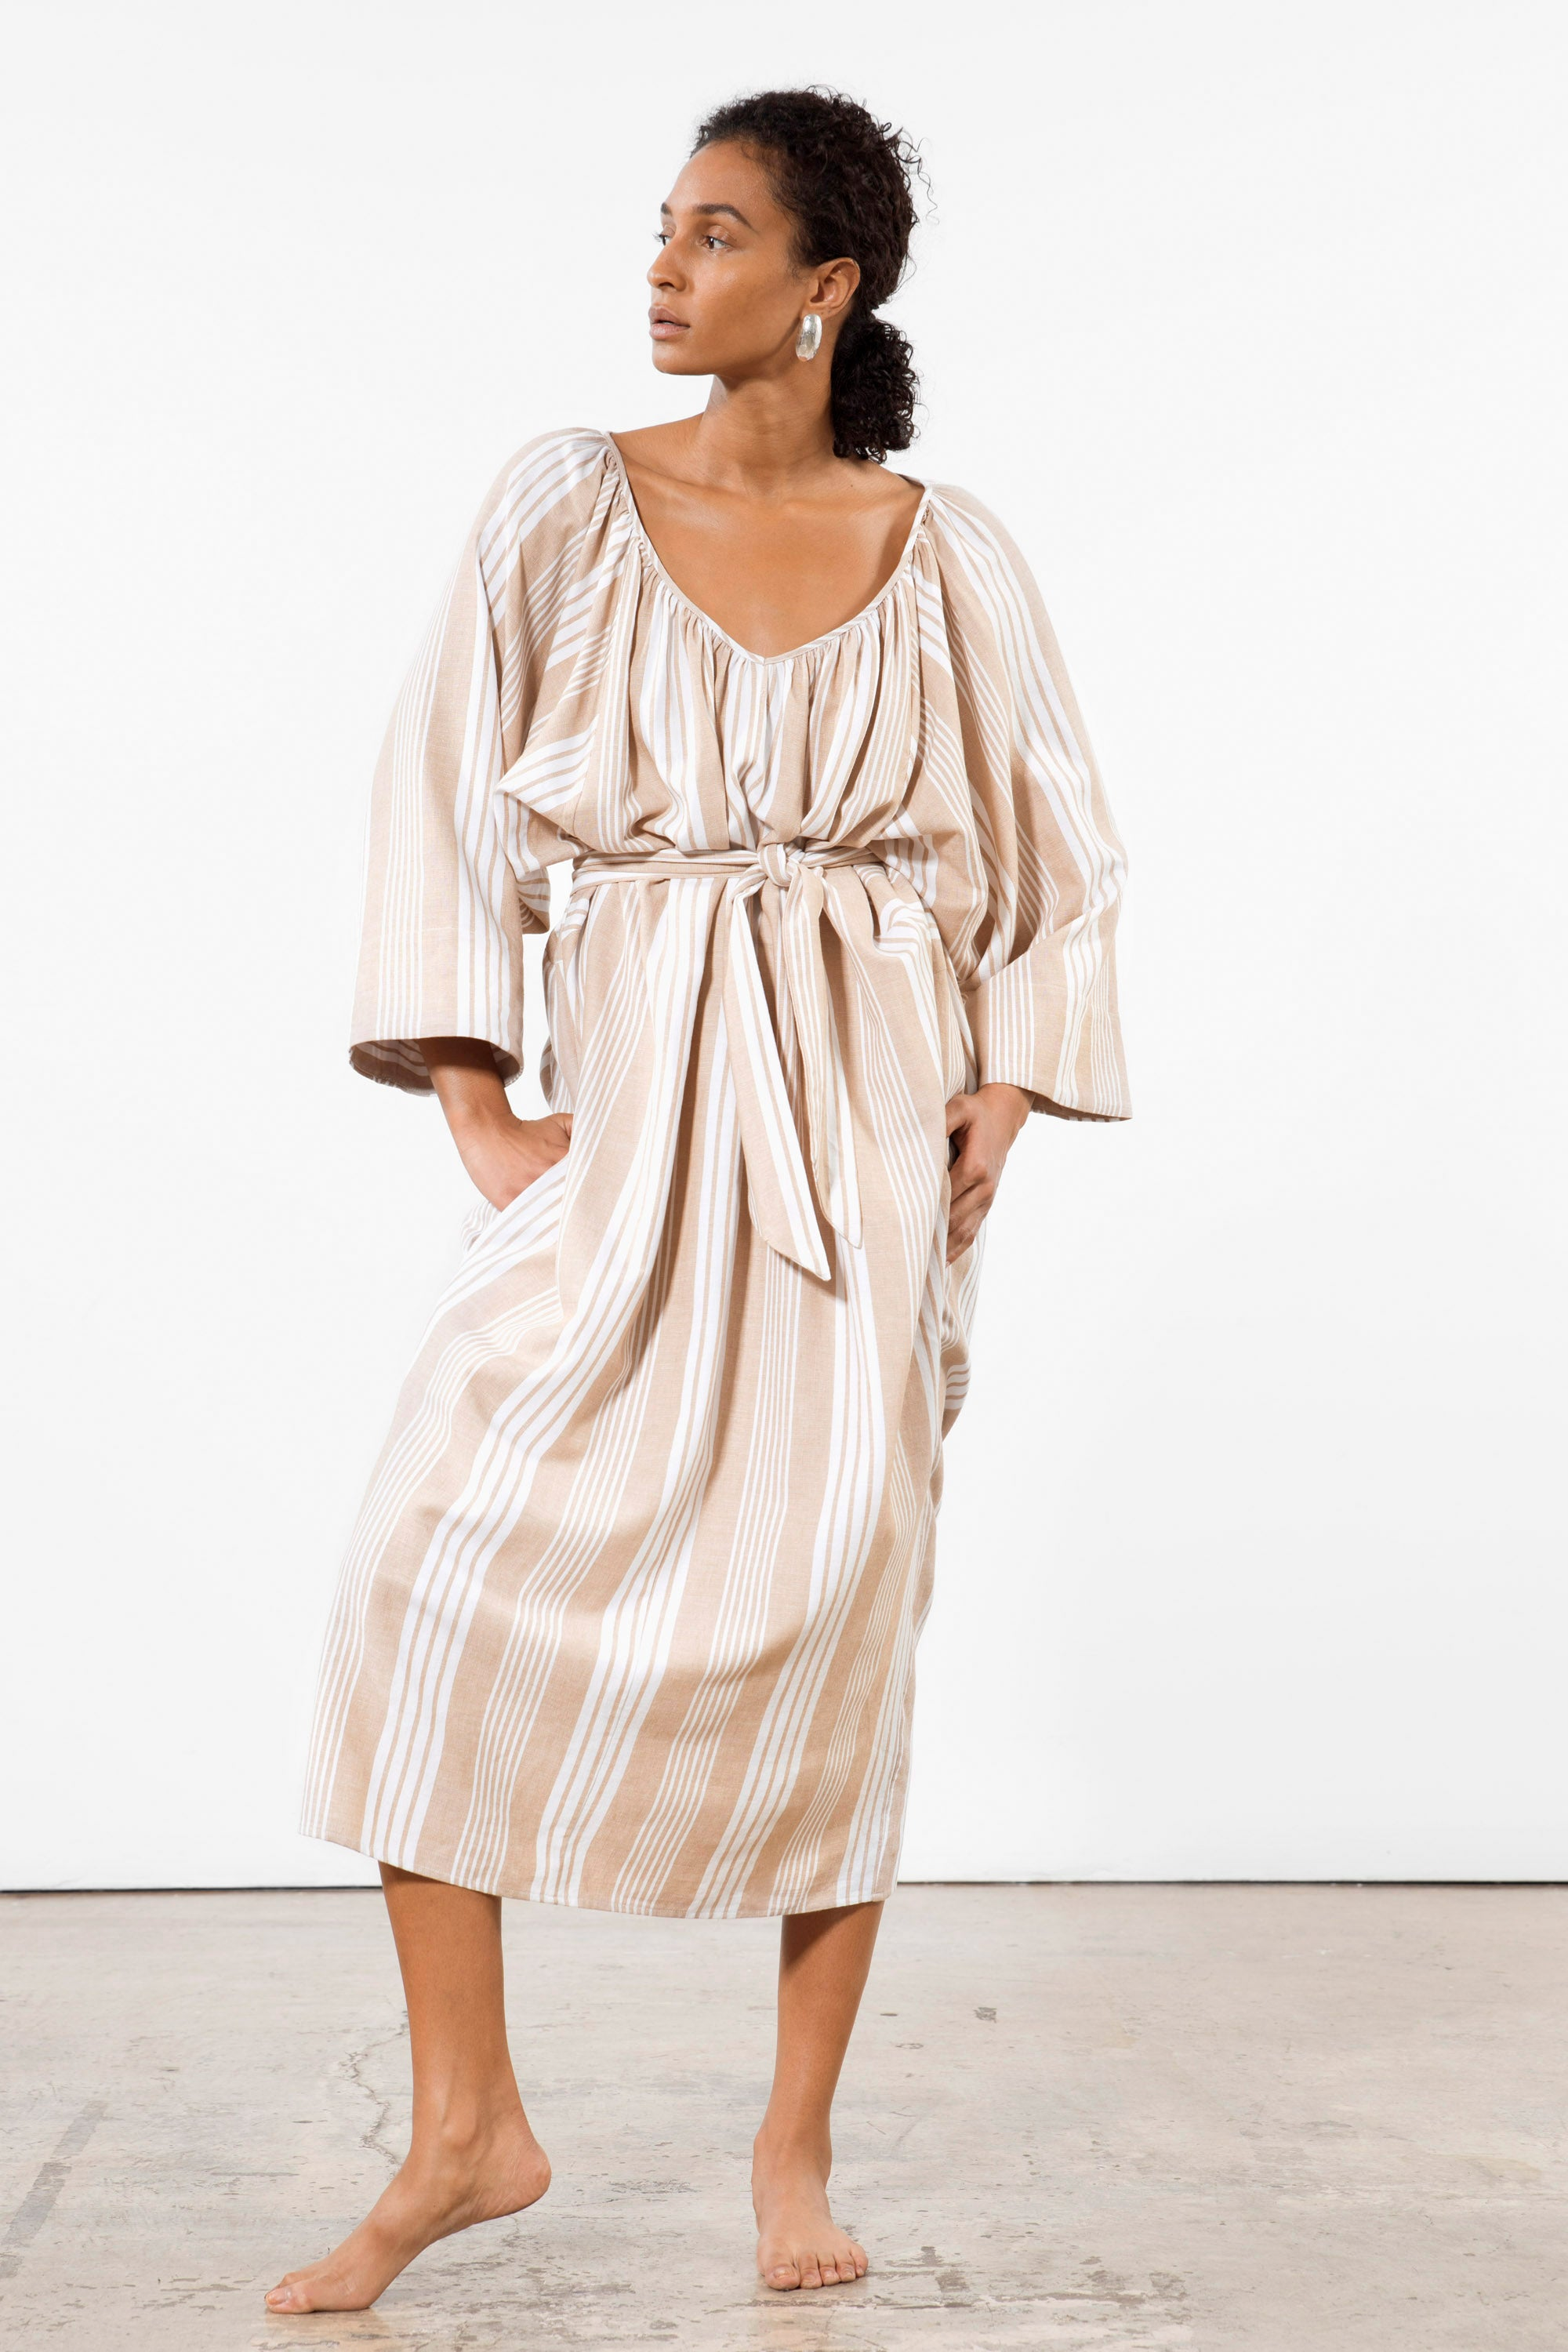 Mara Hoffman White Sand Luz Coverup Dress in Tencel Lyocell and organic cotton (belted)